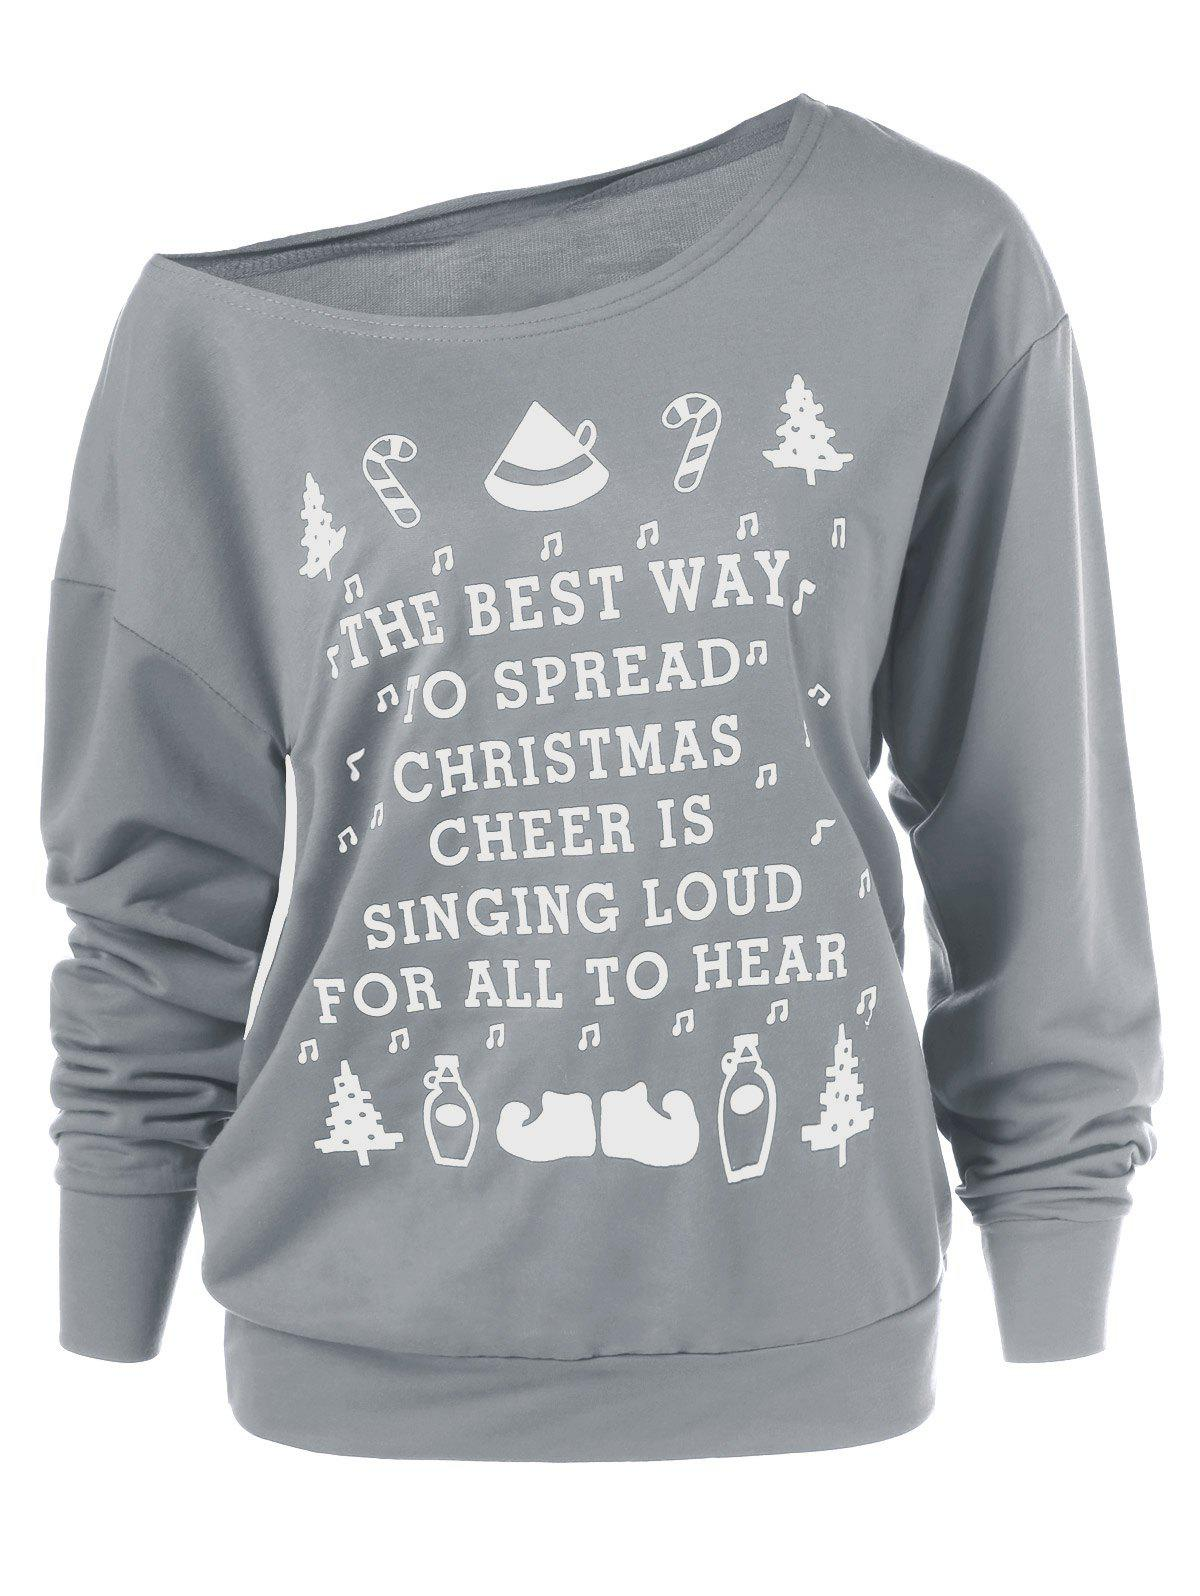 Christmas Graphic Pullover Skew Neck Sweatshirt christmas graphic pullover skew neck green sweatshirt